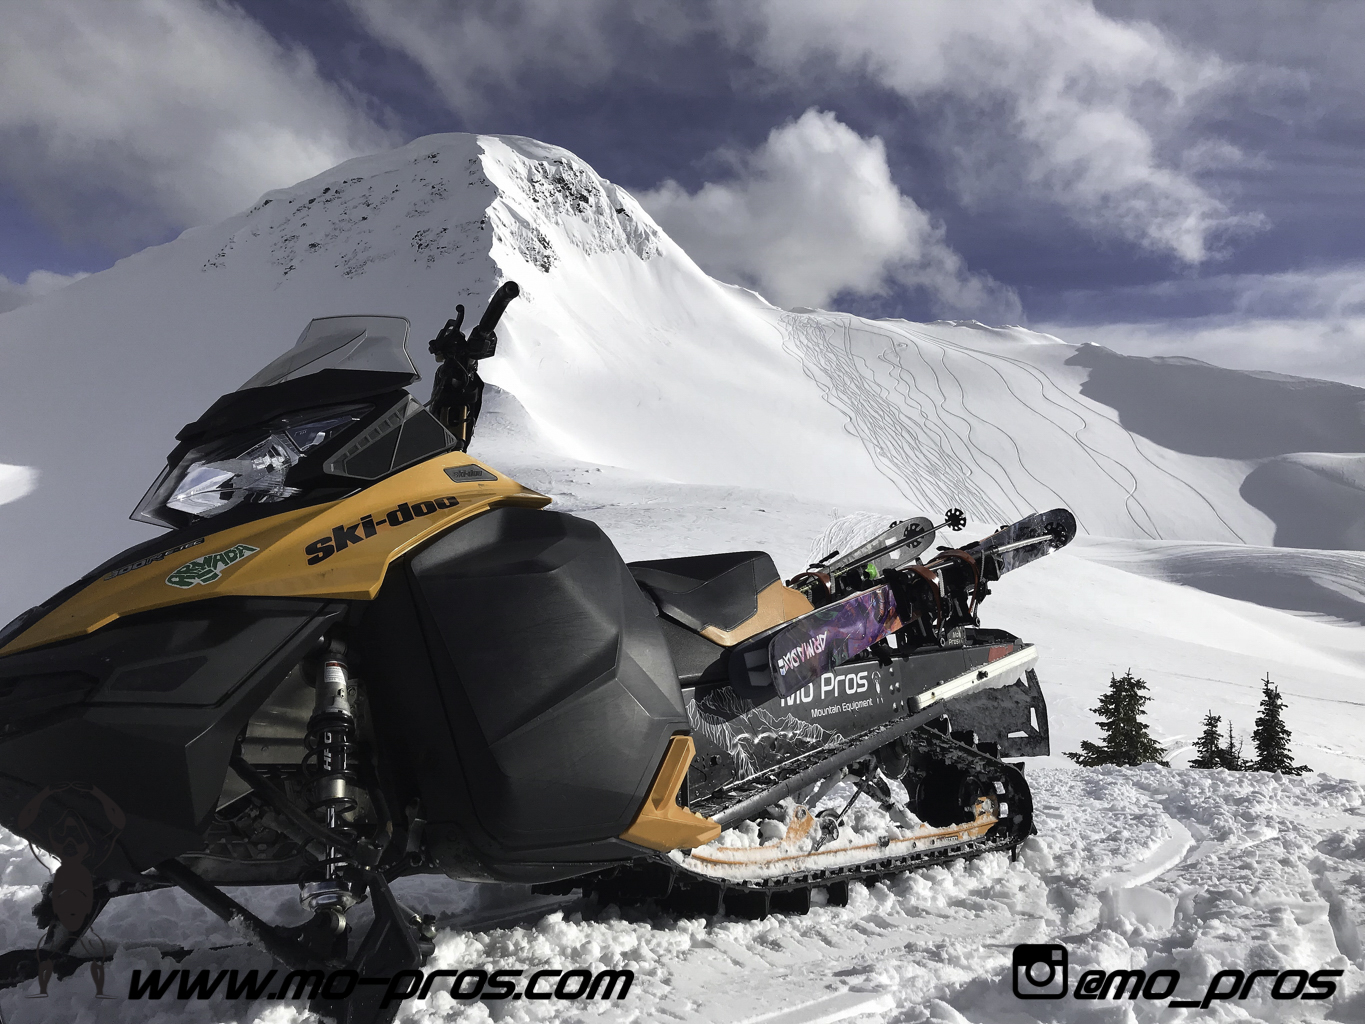 108_CFR rack_Cheetah Factory Racing_Snowboard rack_snowboard_snowmobile bag_Snowmobile_timbersled bag_gas Rack_Gear_Gun Rack_LinQ Snowboard Ski_Ski_Snowbike_Timbersled Rack_Tsaina Rack_Snowboarding_T.jpg